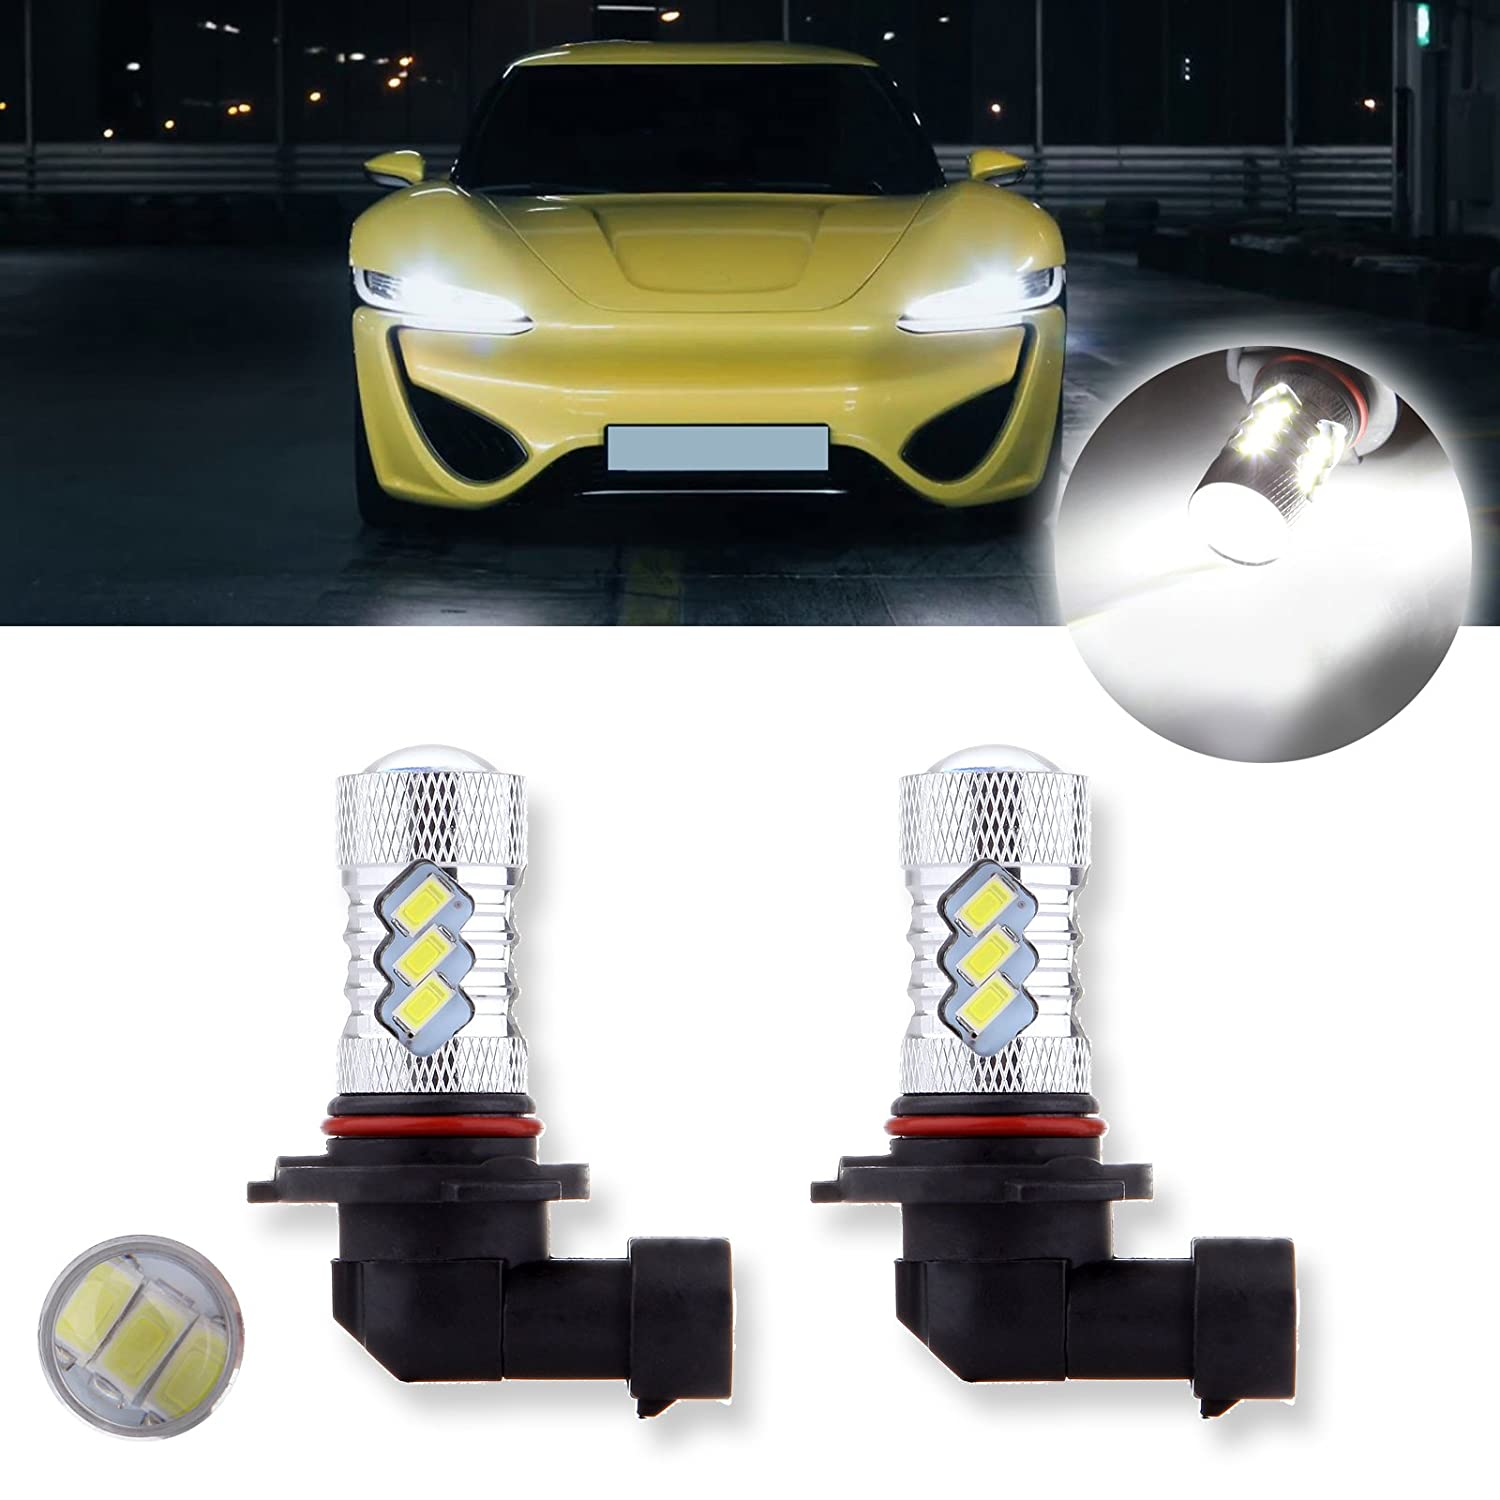 cciyu 2 Pack High Power 60W 6000 LM 15SMD 9005 HB3 Cree LED Light Replacement fit for Fog DRL Daytime Light, Xenon White 800291-5210-1558351